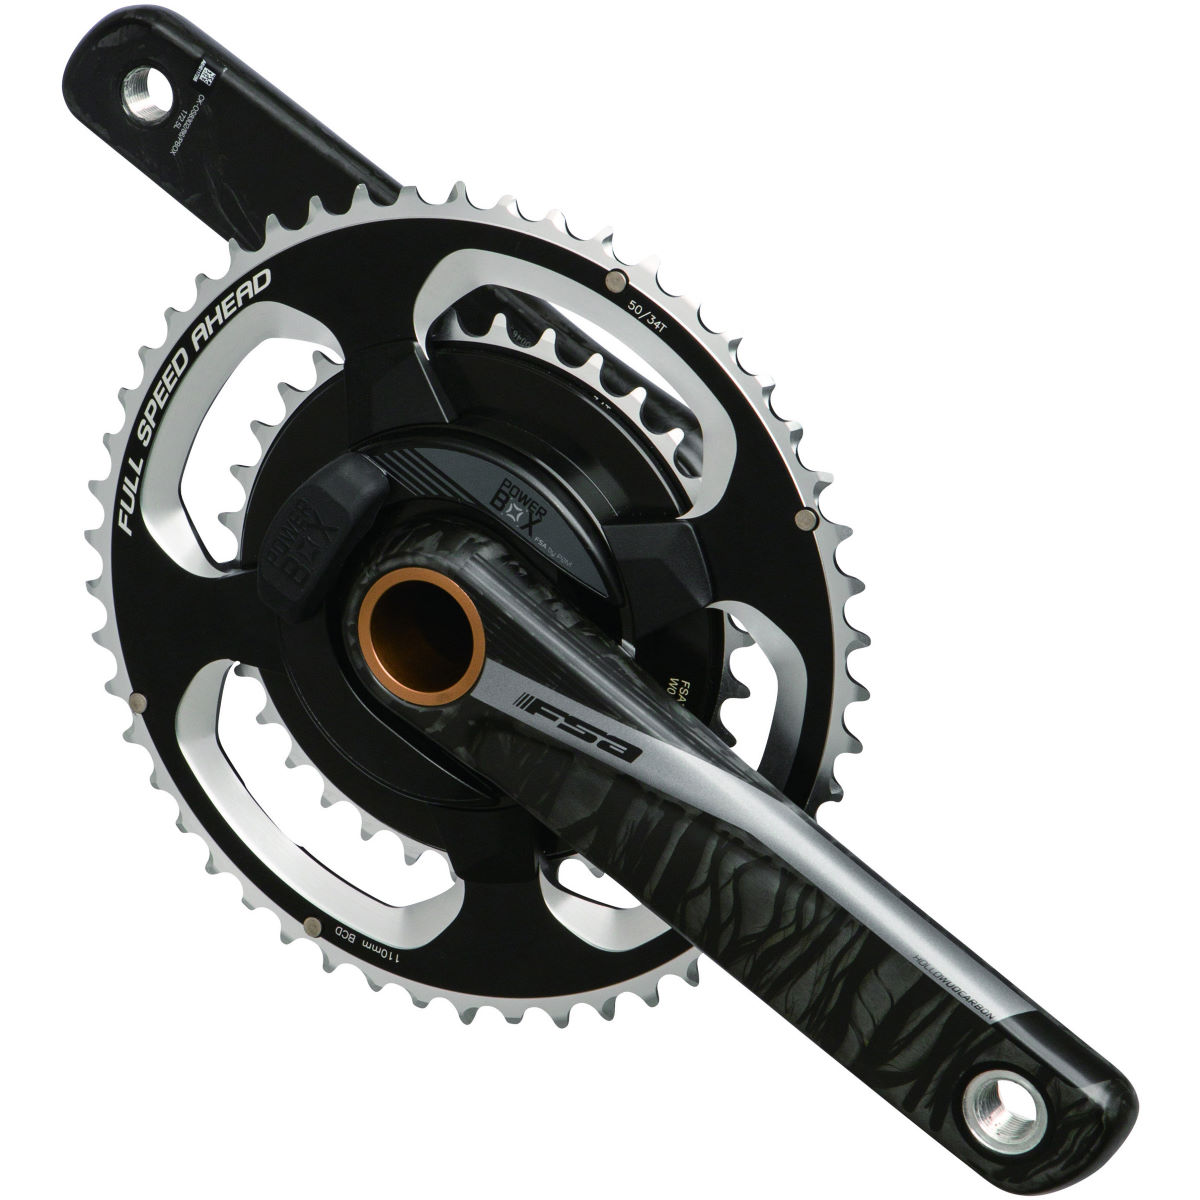 FSA FSA Powerbox Carbon Road ABS Chainset   Power Meter Chainsets